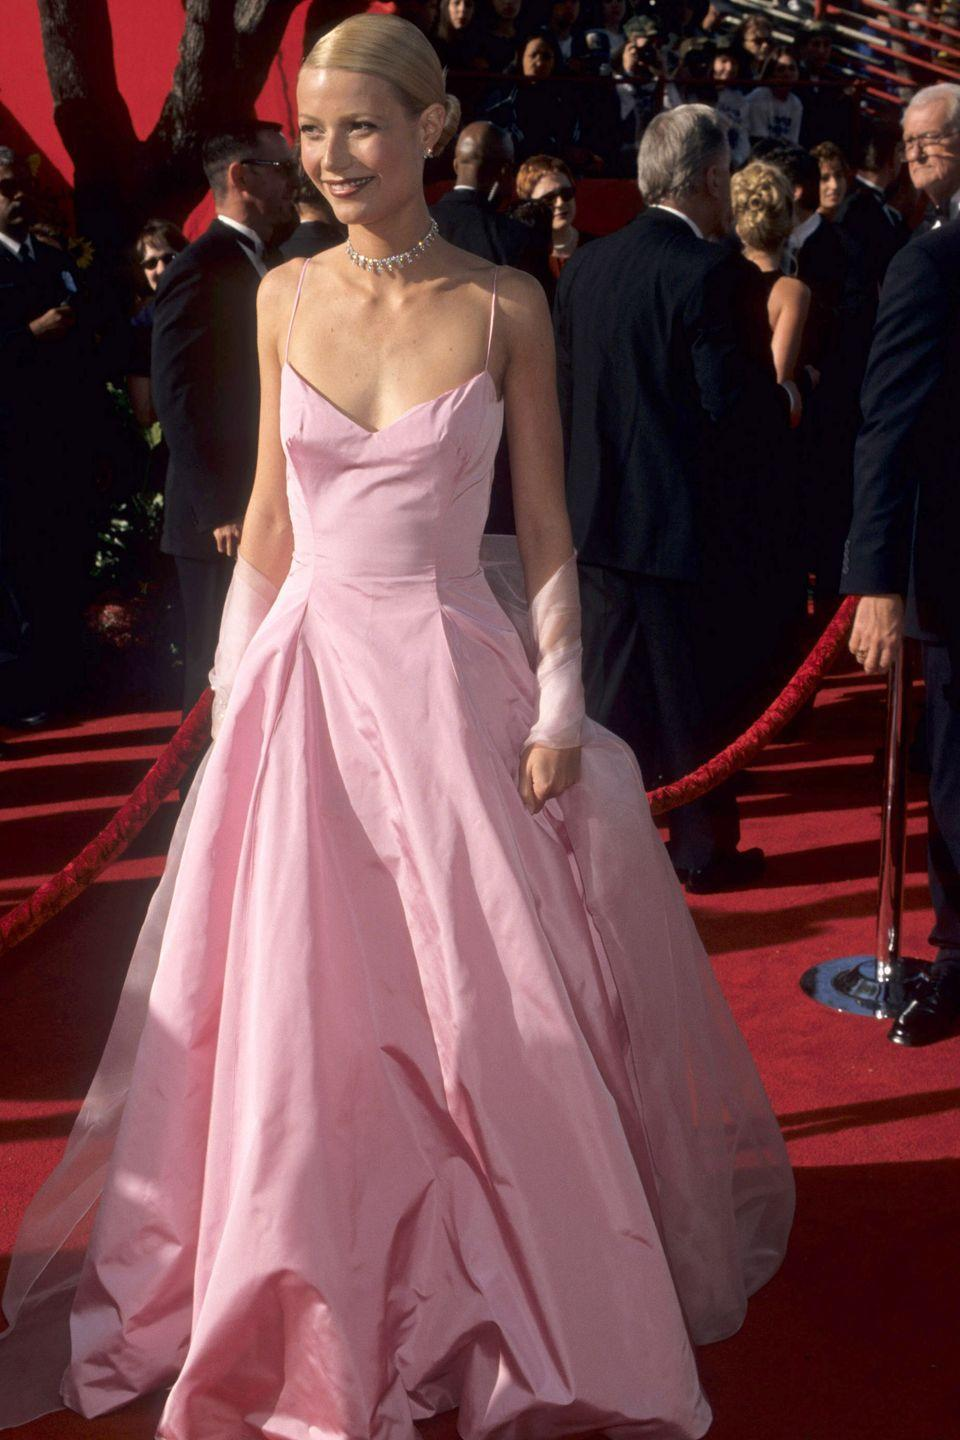 <p>Gwyneth Paltrow channeled Princess Aurora in a pale pink Ralph Lauren gown at the 1999 Academy Awards, where she won Best Actress for <em>Shakespeare in Lov</em>e.</p>